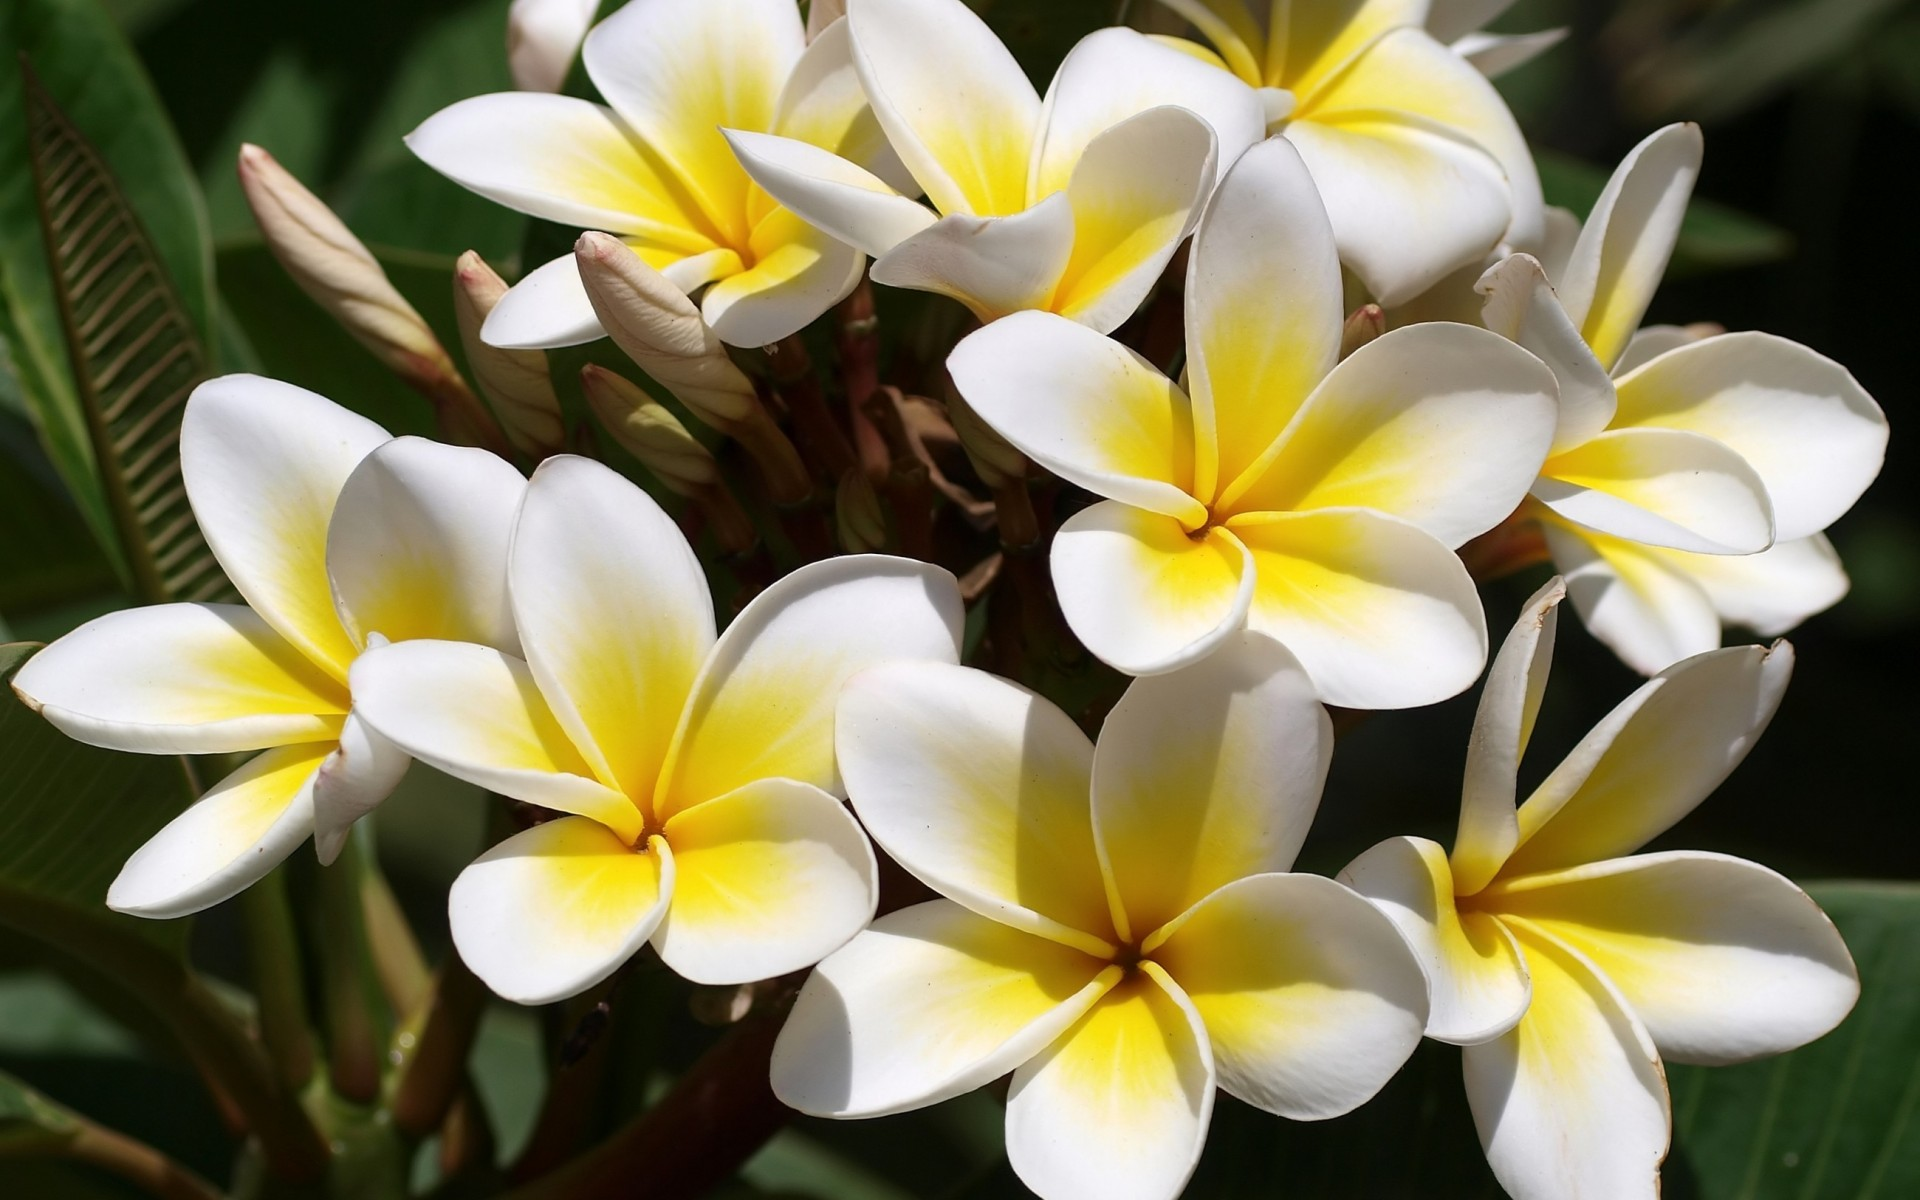 Flowers Plumeria Frangipani White Yellow Wallpaper 1920x1200